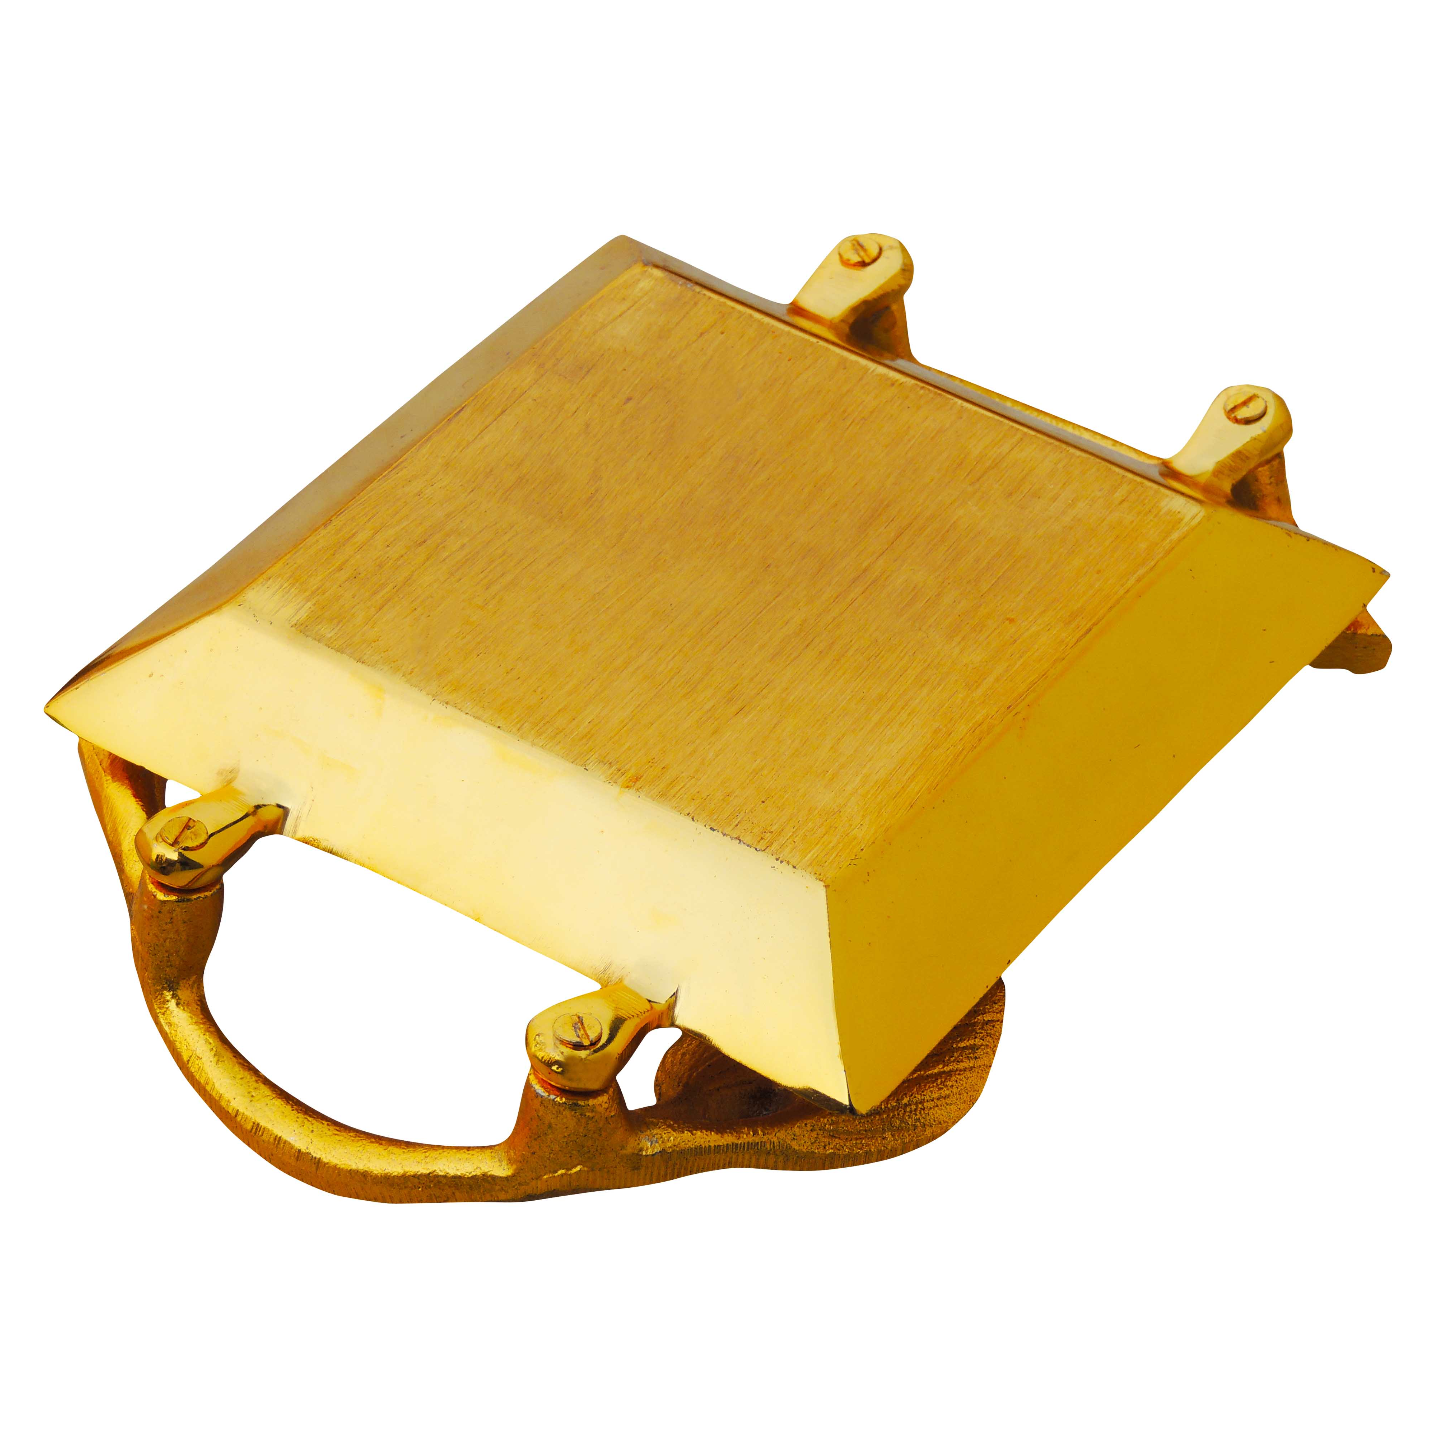 Aluminium Metal Tray Serving Platter in Gold Finish - 9*6.5 Inch  (A3235/9)